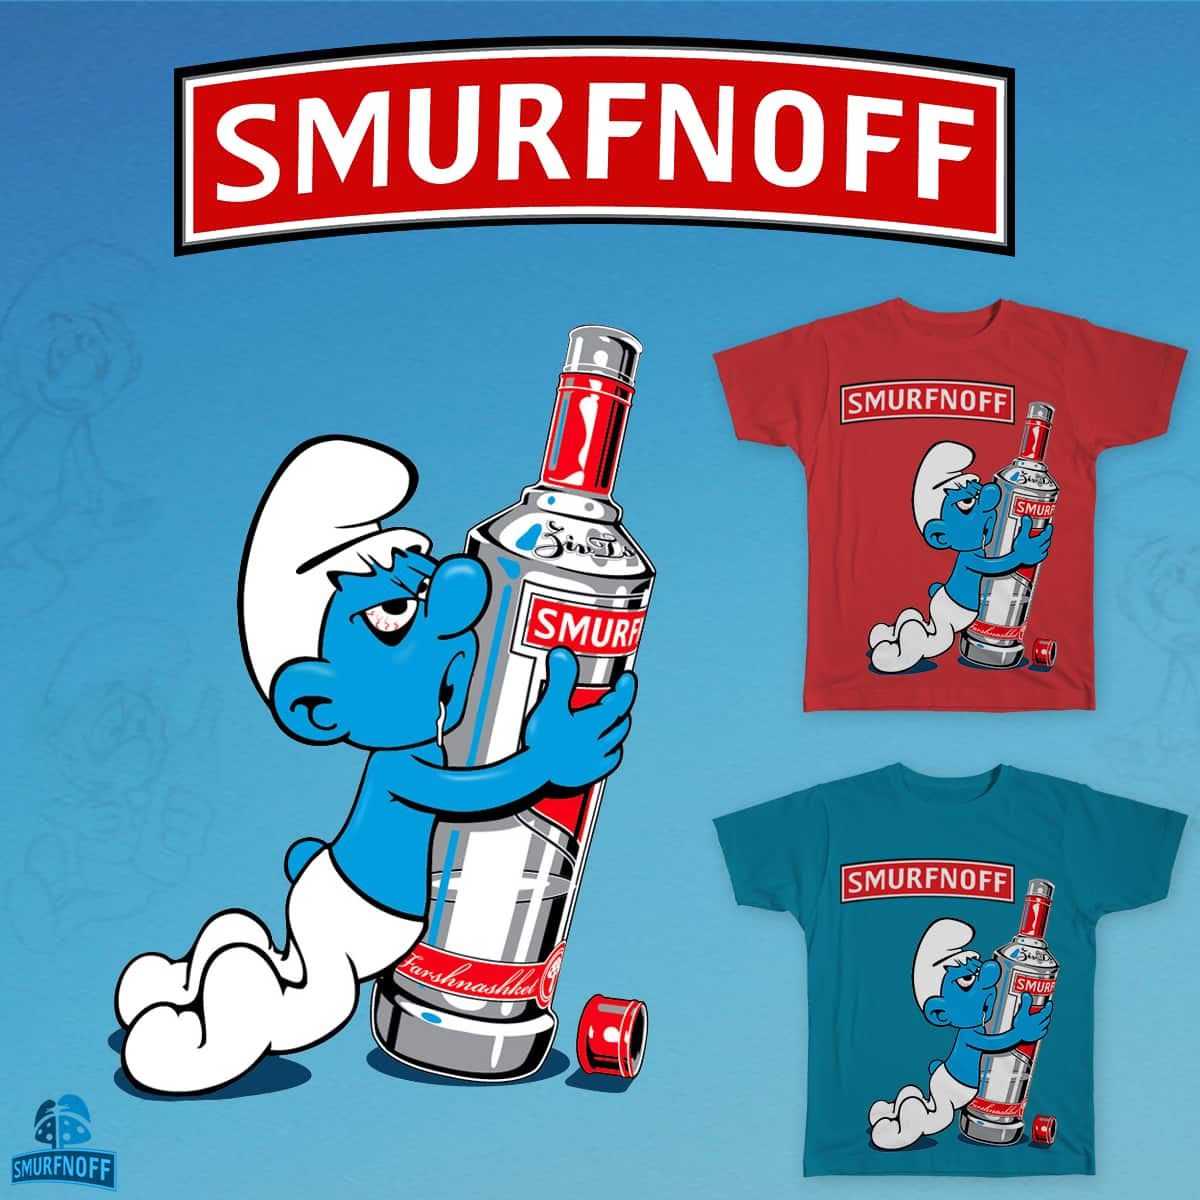 Smurfnoff by zivts on Threadless